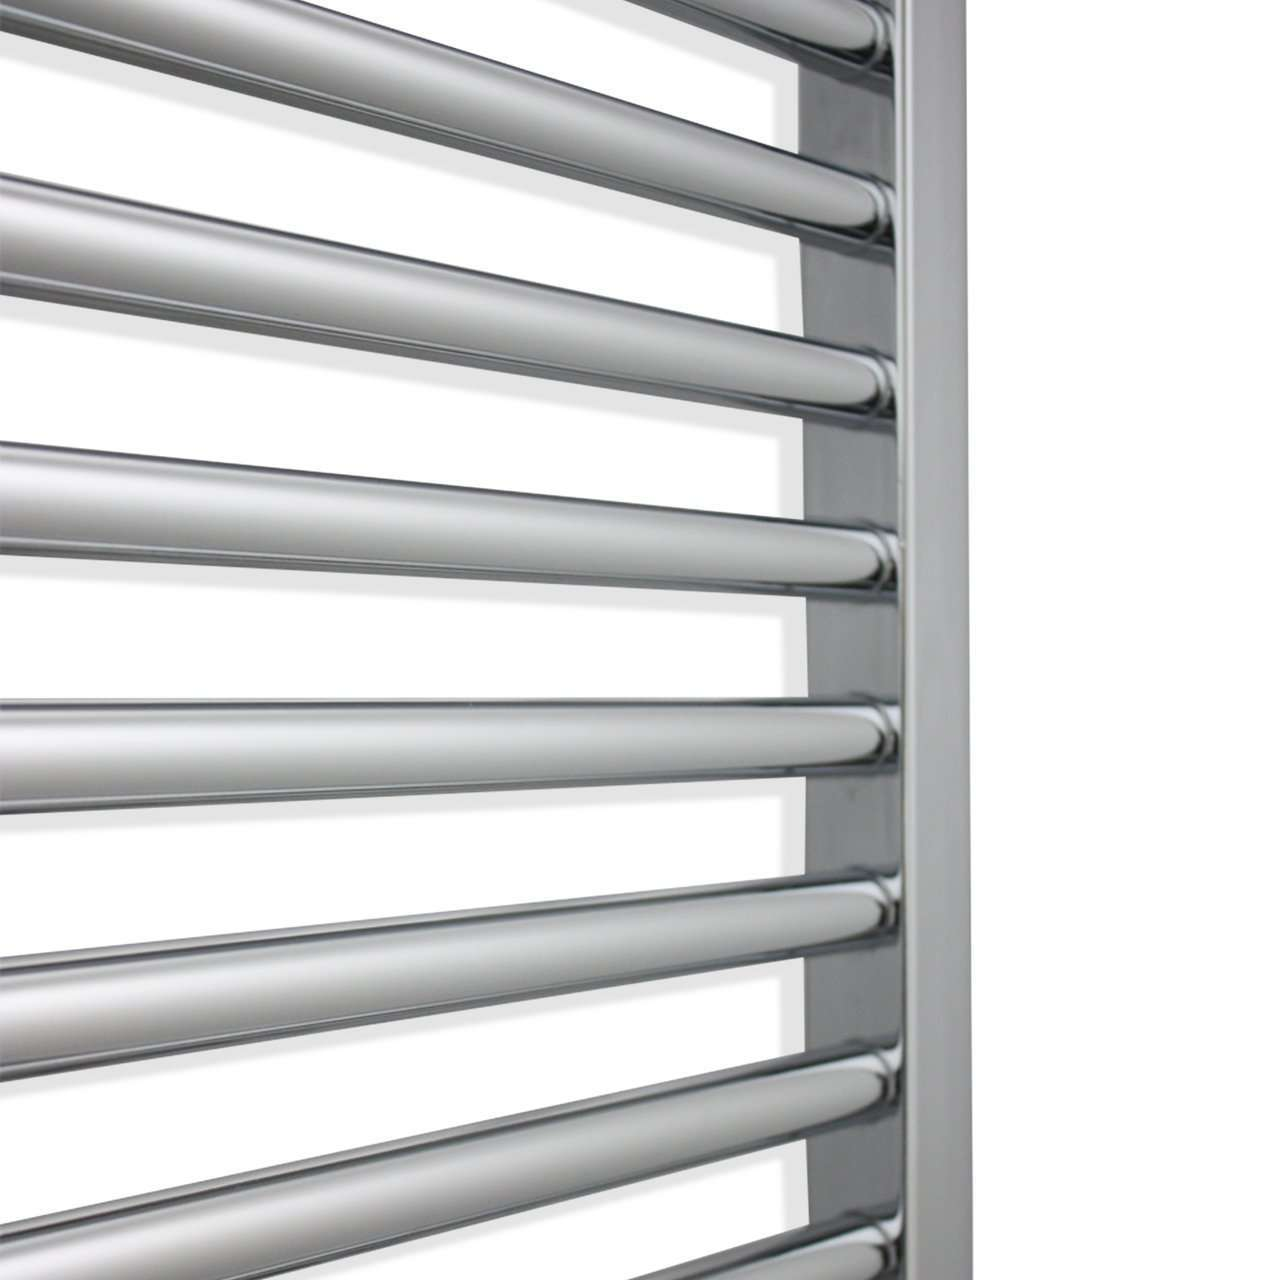 750mm Wide 1100mm High Flat Chrome Heated Towel Rail Radiator HTR